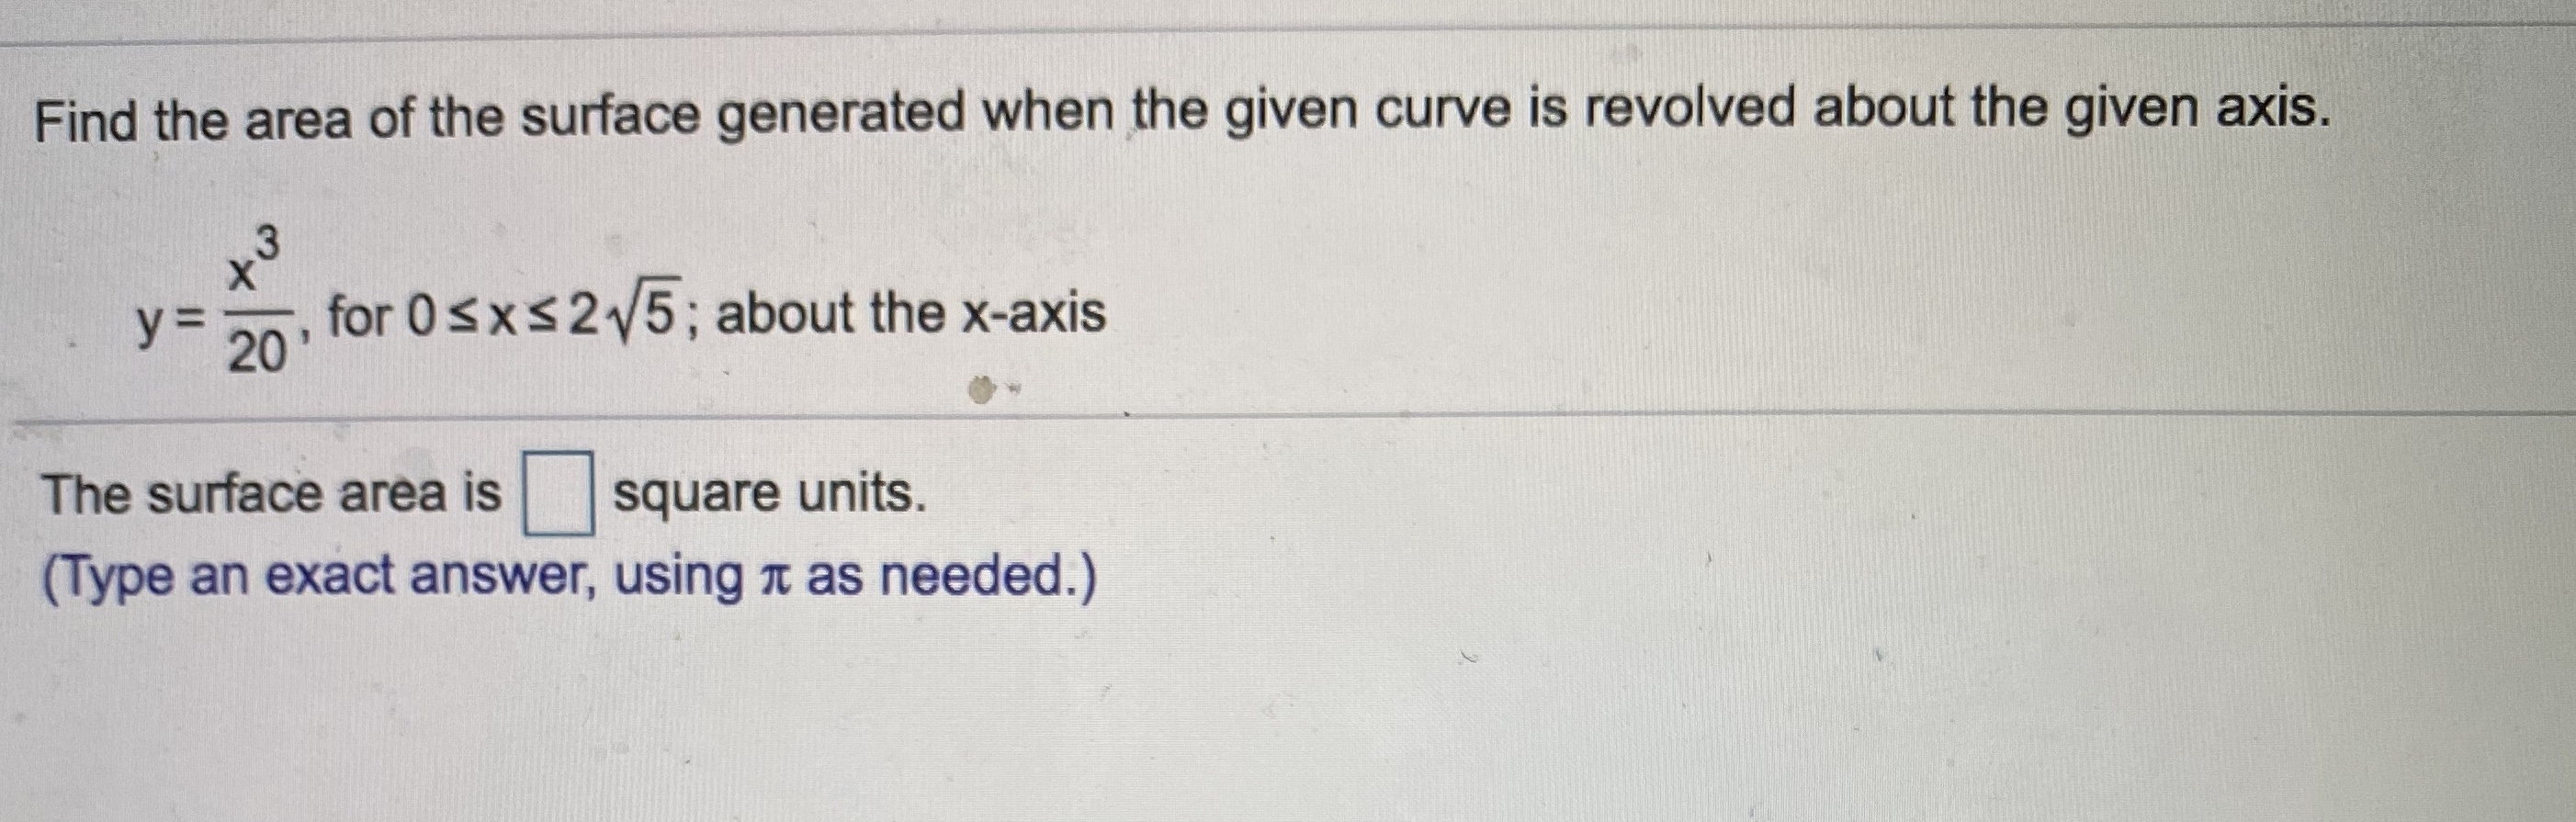 Find the area of the surface generated when the given curve is revolved about the given axis. y= for 0sxs25; about the x-axis 20 The surface area is square units. (Type an exact answer, using n as needed.)